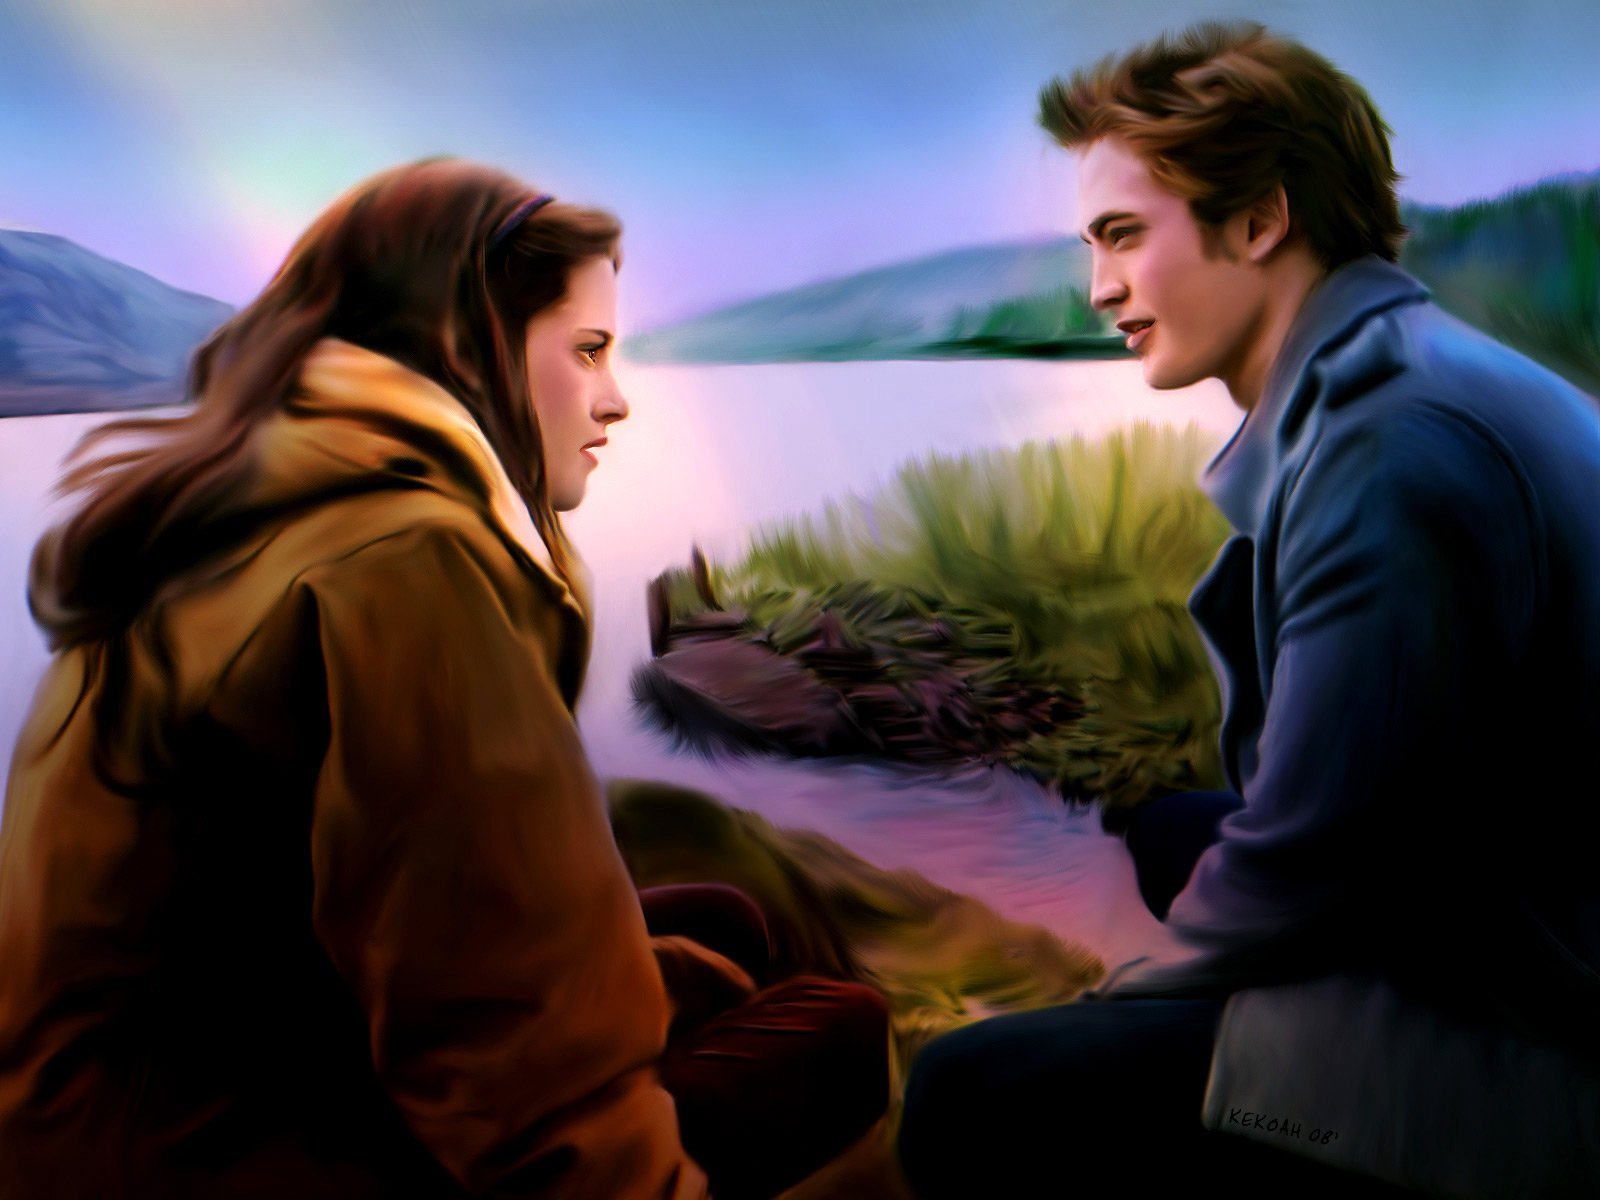 Twilight is Love again couple painting art beautiful tree water wallpaper | 1600x1200 | 498588 | WallpaperUP